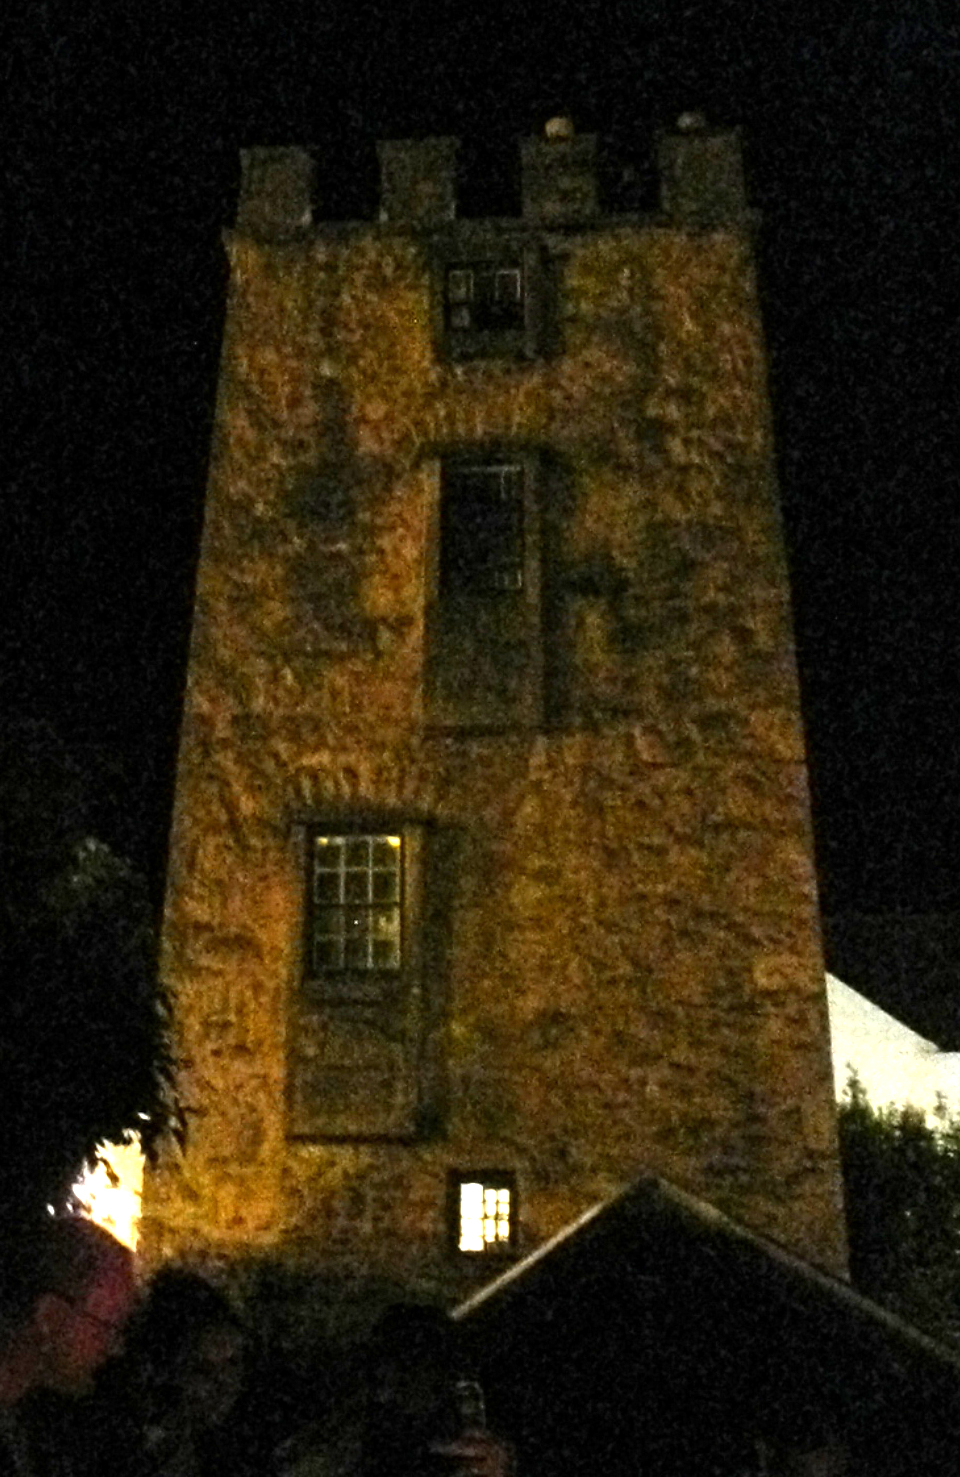 The Curfew Tower by bonfire light